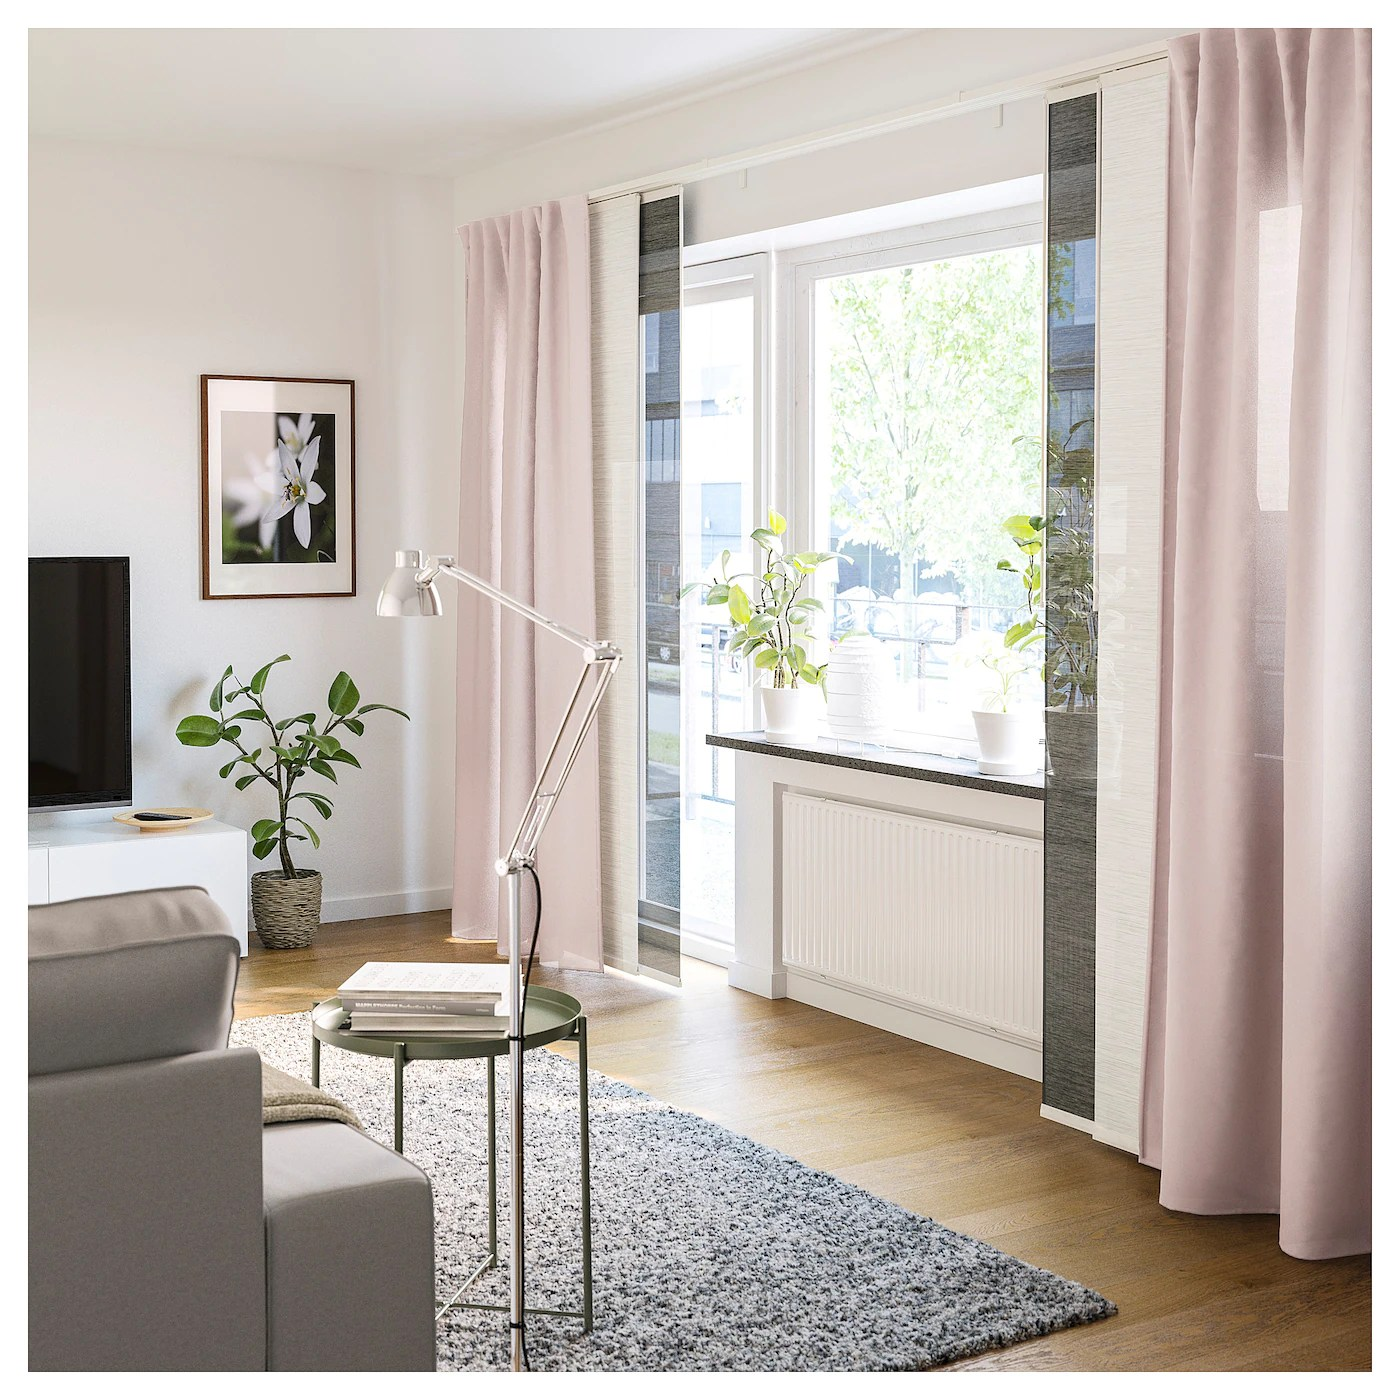 Vidga Triple Curtain Rail White Ikea - Ikea Gardinenstange Vidga Video